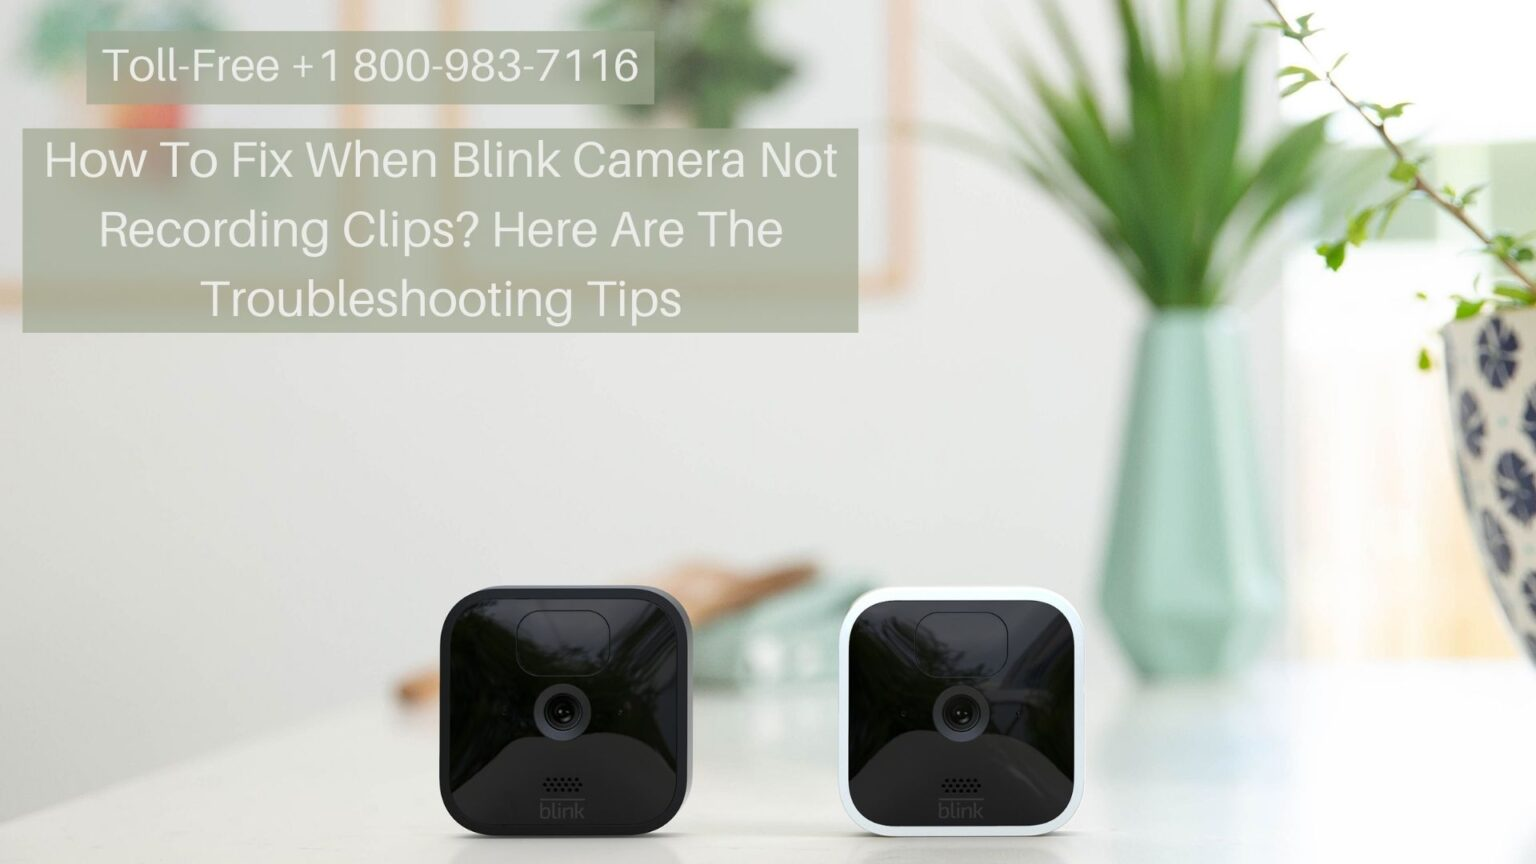 Blink Camera Live View Not Working 1-8009837116 Blink Camera Not Recording Fixes